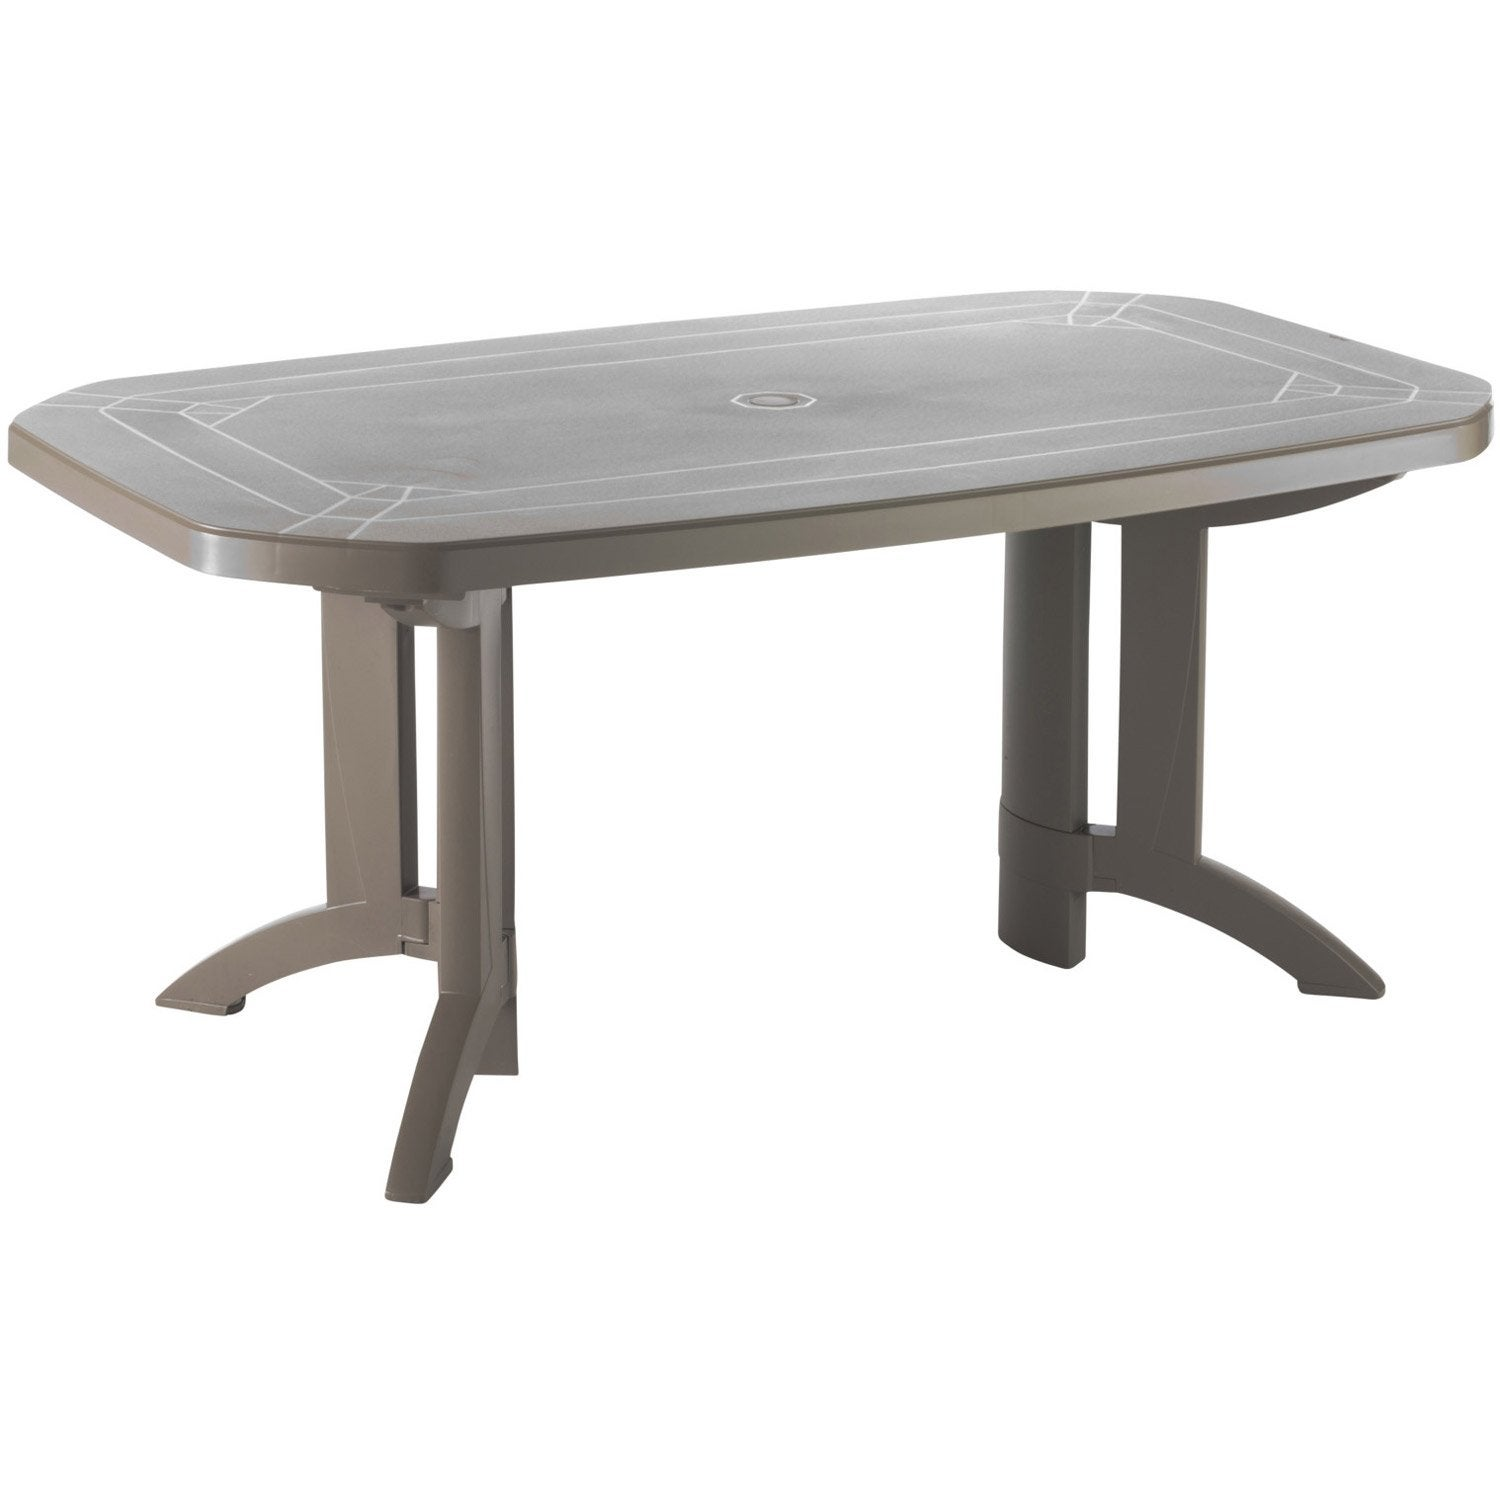 Table De Jardin Grosfillex V Ga Rectangulaire Taupe 6 Personnes Leroy Merlin